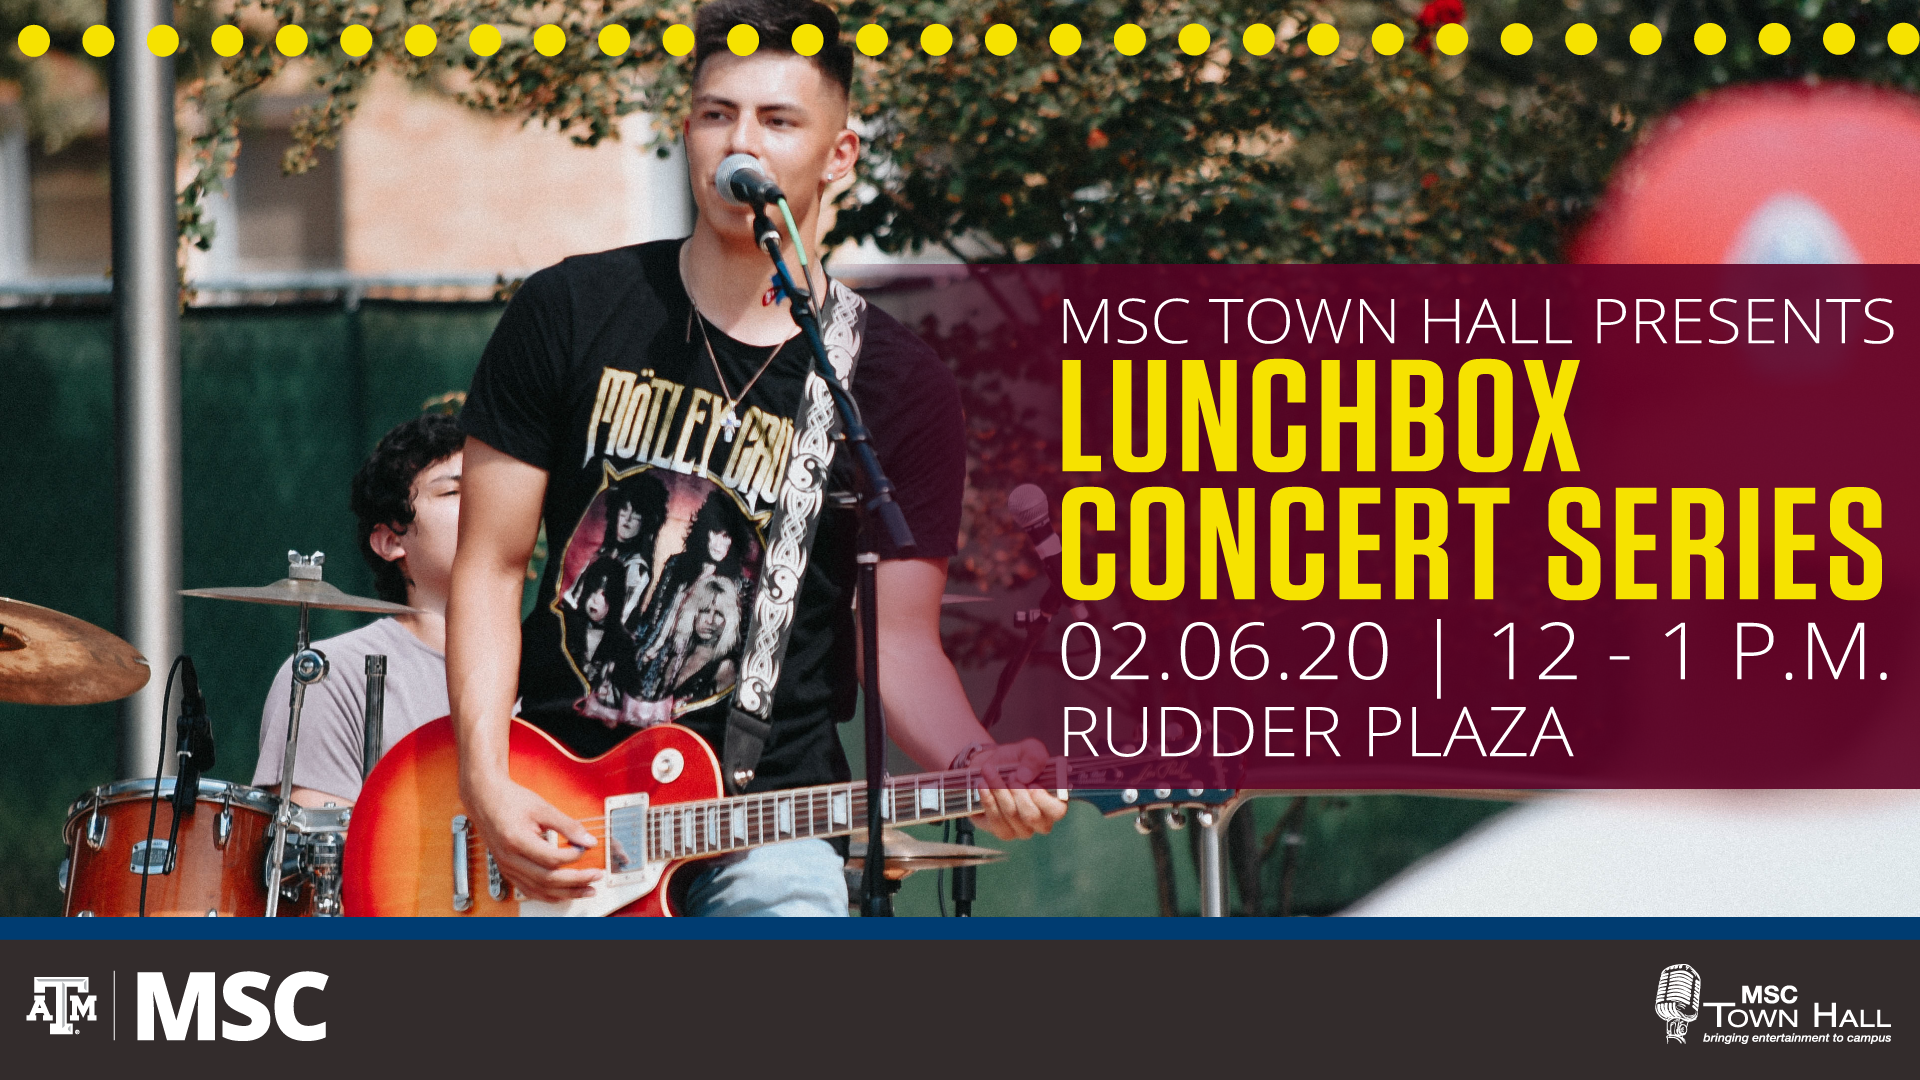 Lunchbox Concert Series, February 6, 2020, 12–1 p.m. in Rudder Plaza.